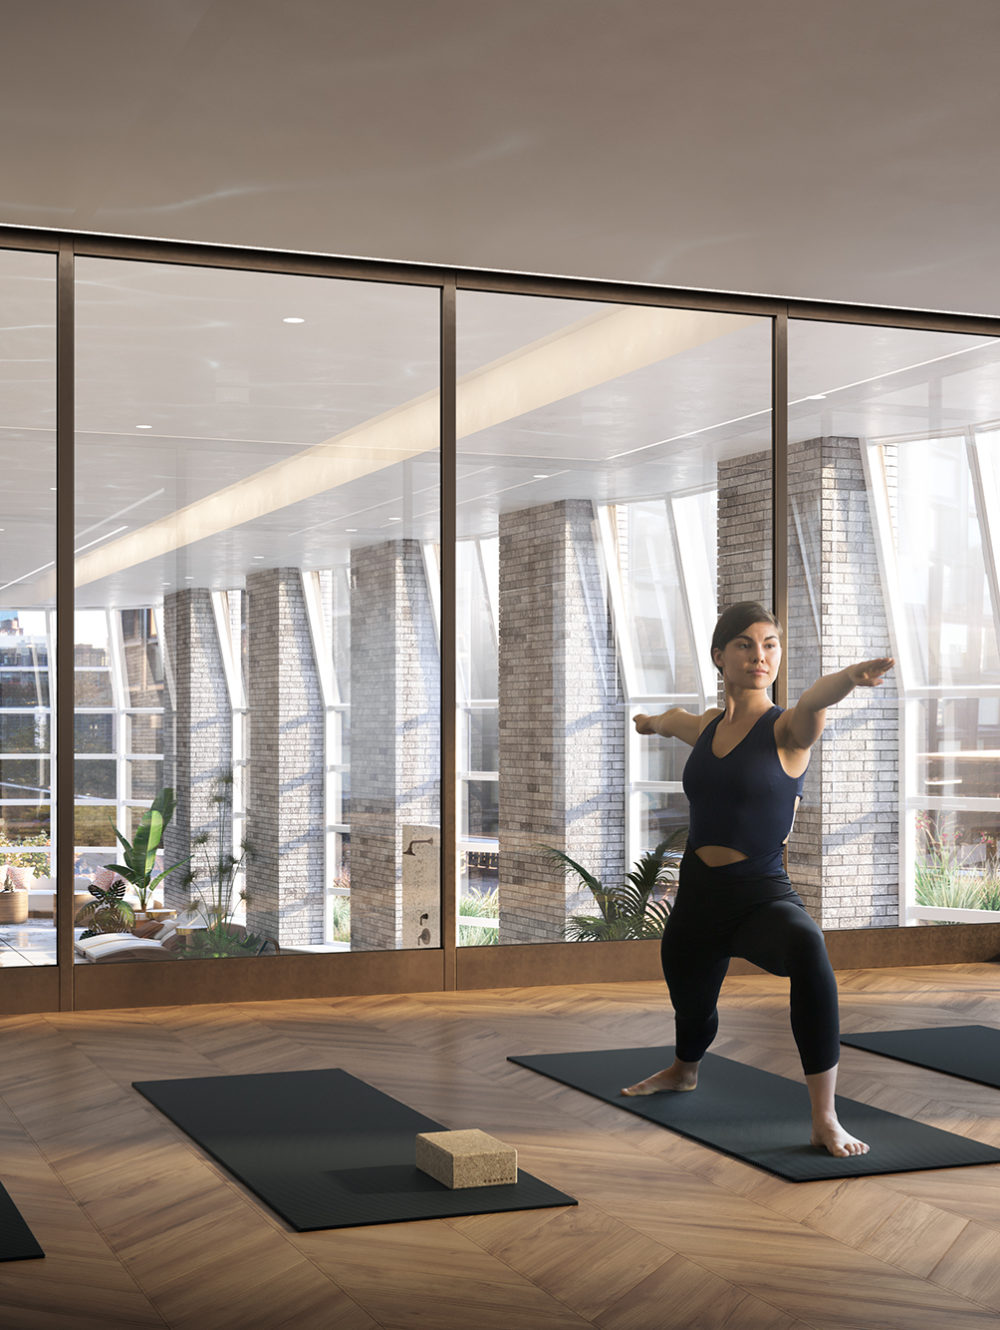 Interior view of Lantern House residence yoga room with window view of NYC. Has yoga mats and wooden platform.